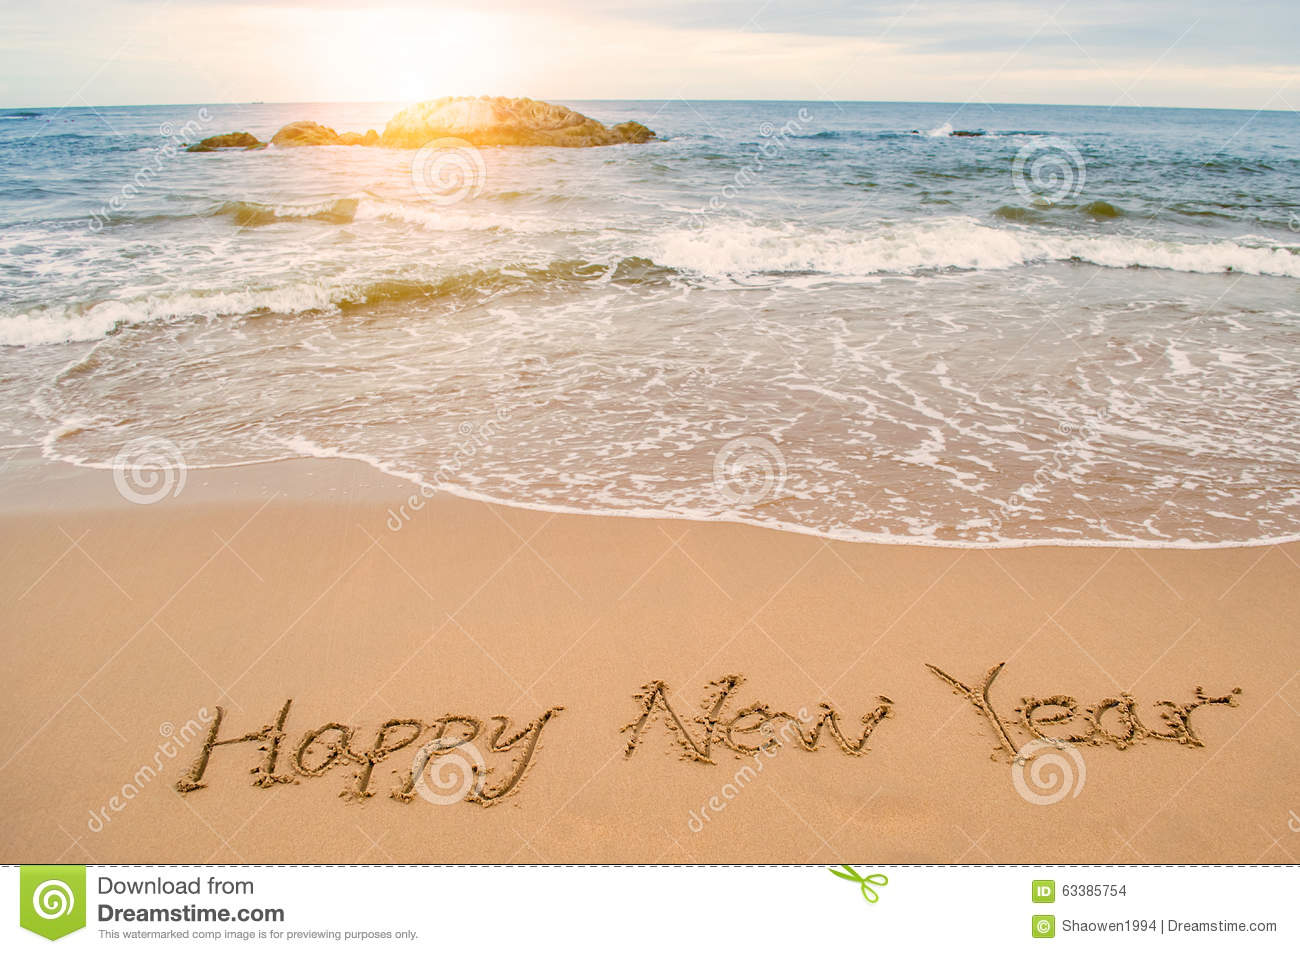 write happy new year on beach